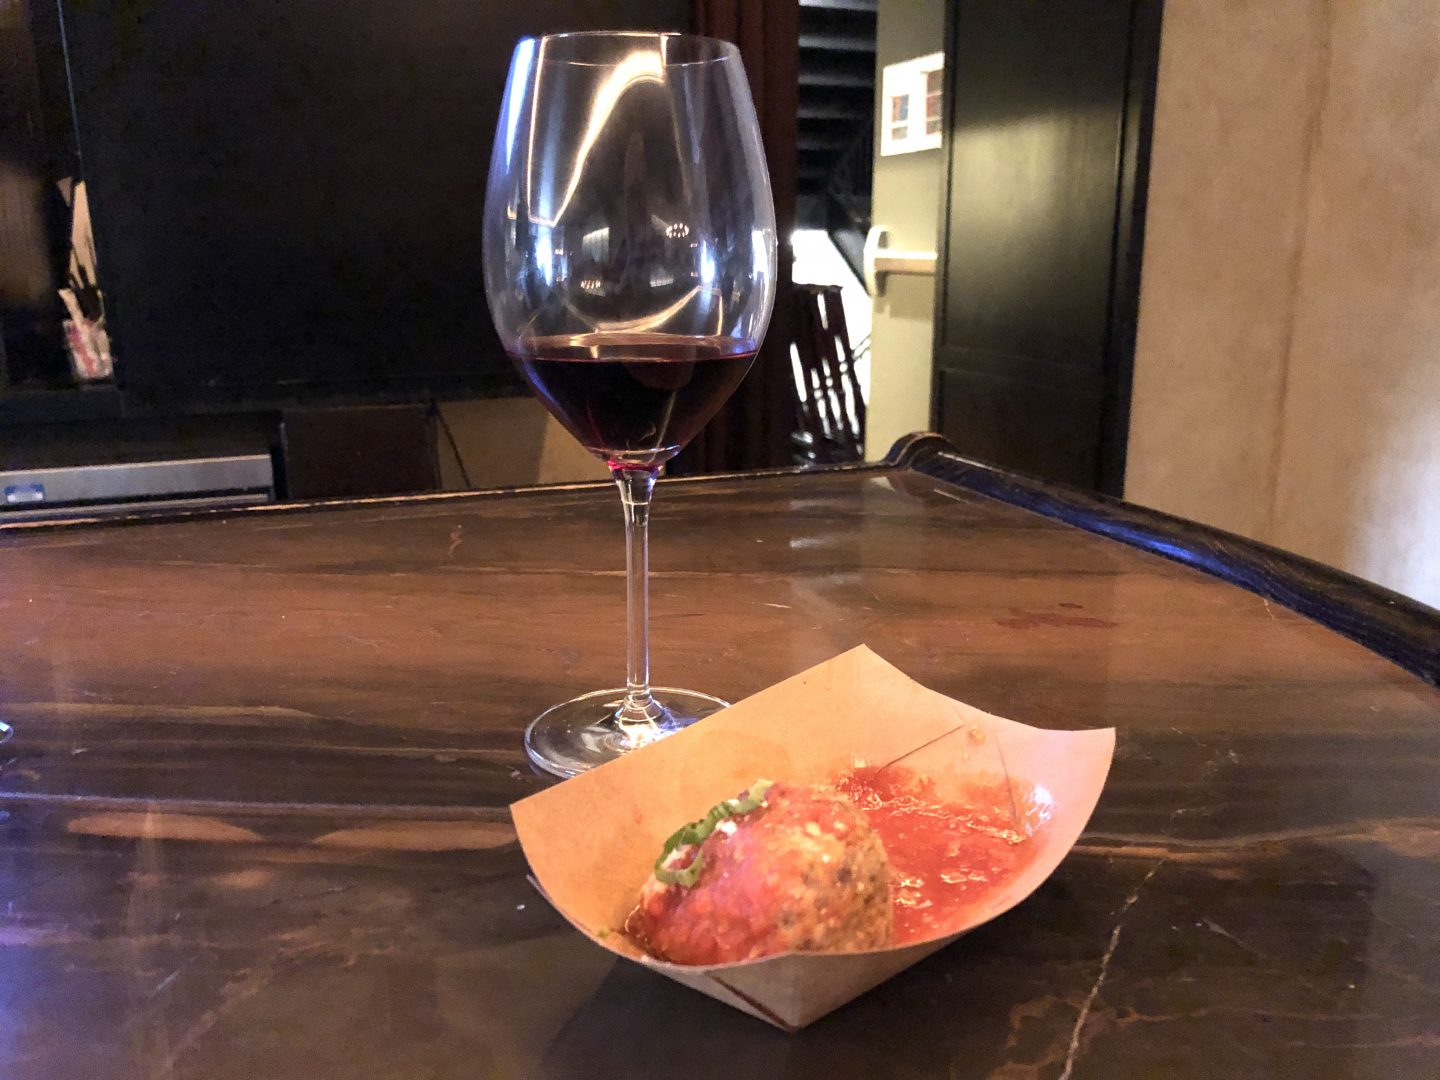 Meatball and Wine Pairing at Formento's Chicago